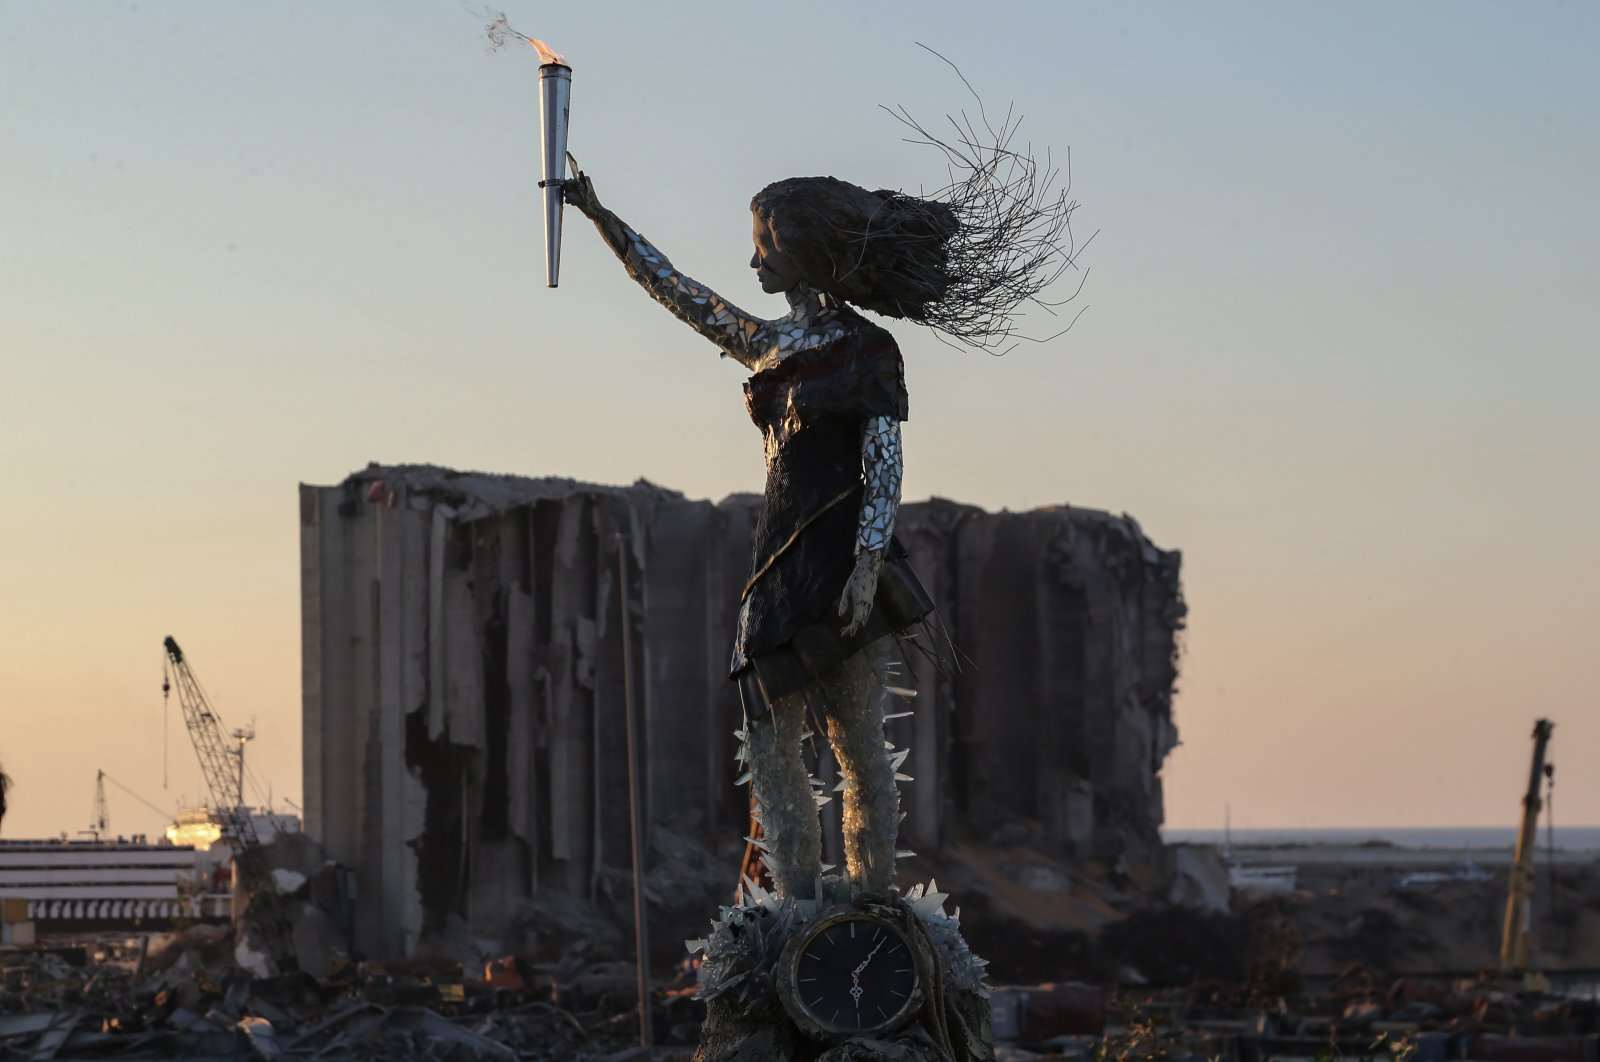 A statue of a woman carrying the torch of revolution made of glass and the rubble that resulted from the explosion at the Beirut port is seen in Beirut, Lebanon, Oct. 17, 2020. (EPA Photo)